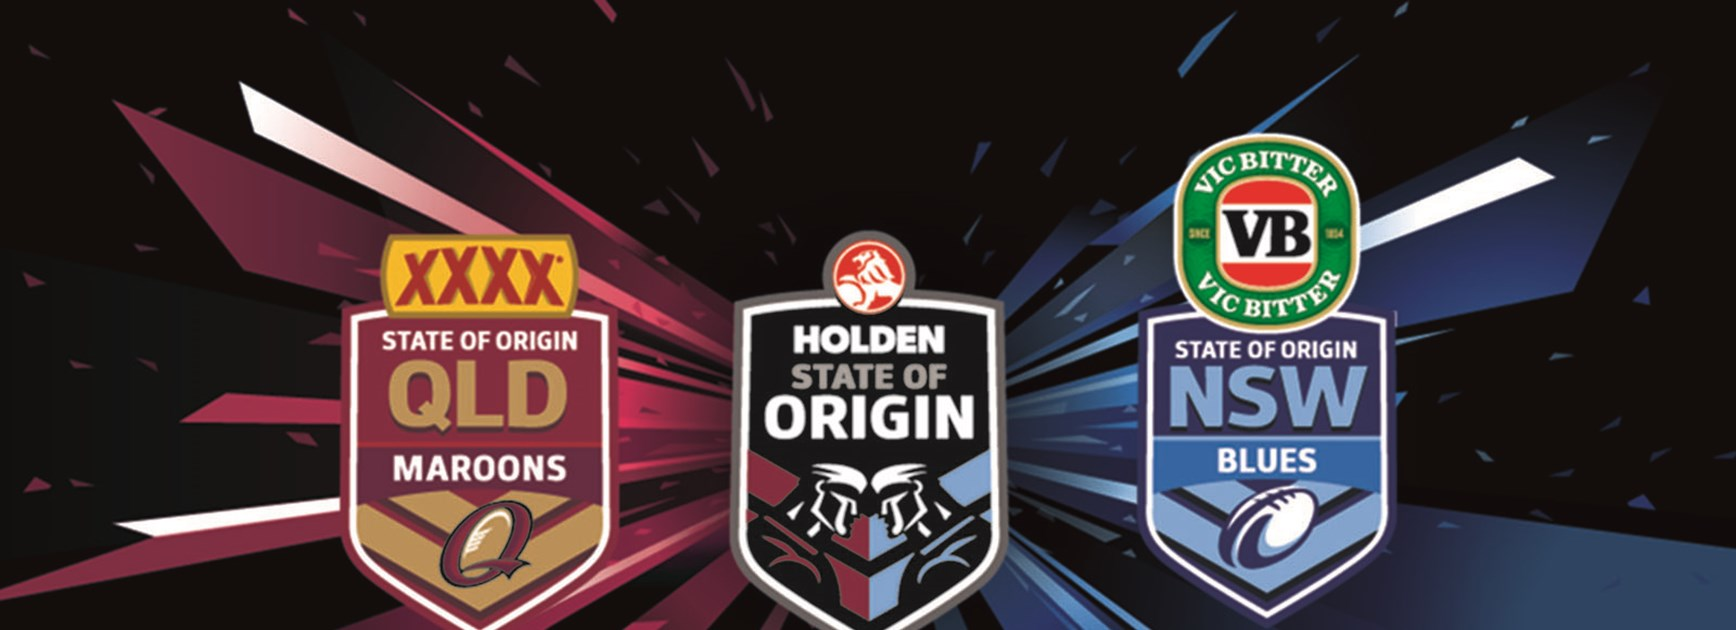 Holden State of Origin Series 2015.